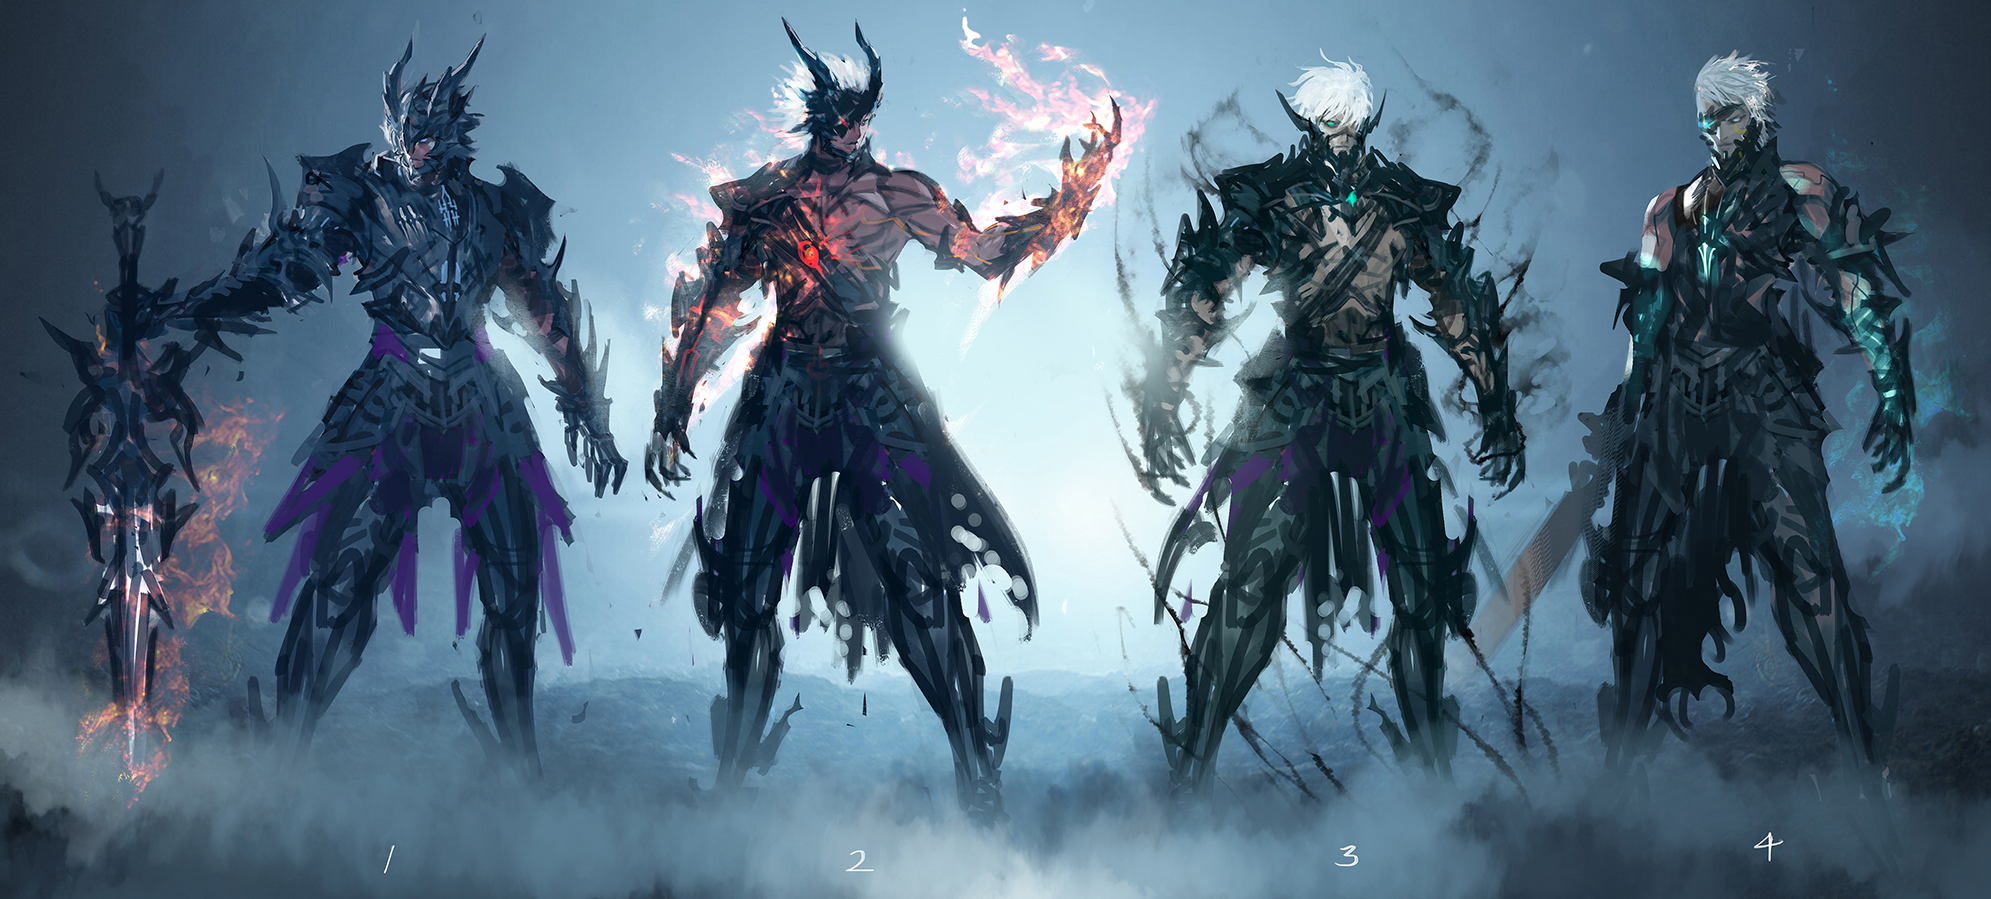 Lineage 2 ㅣ WHO ARE YOU in Death Knight 2